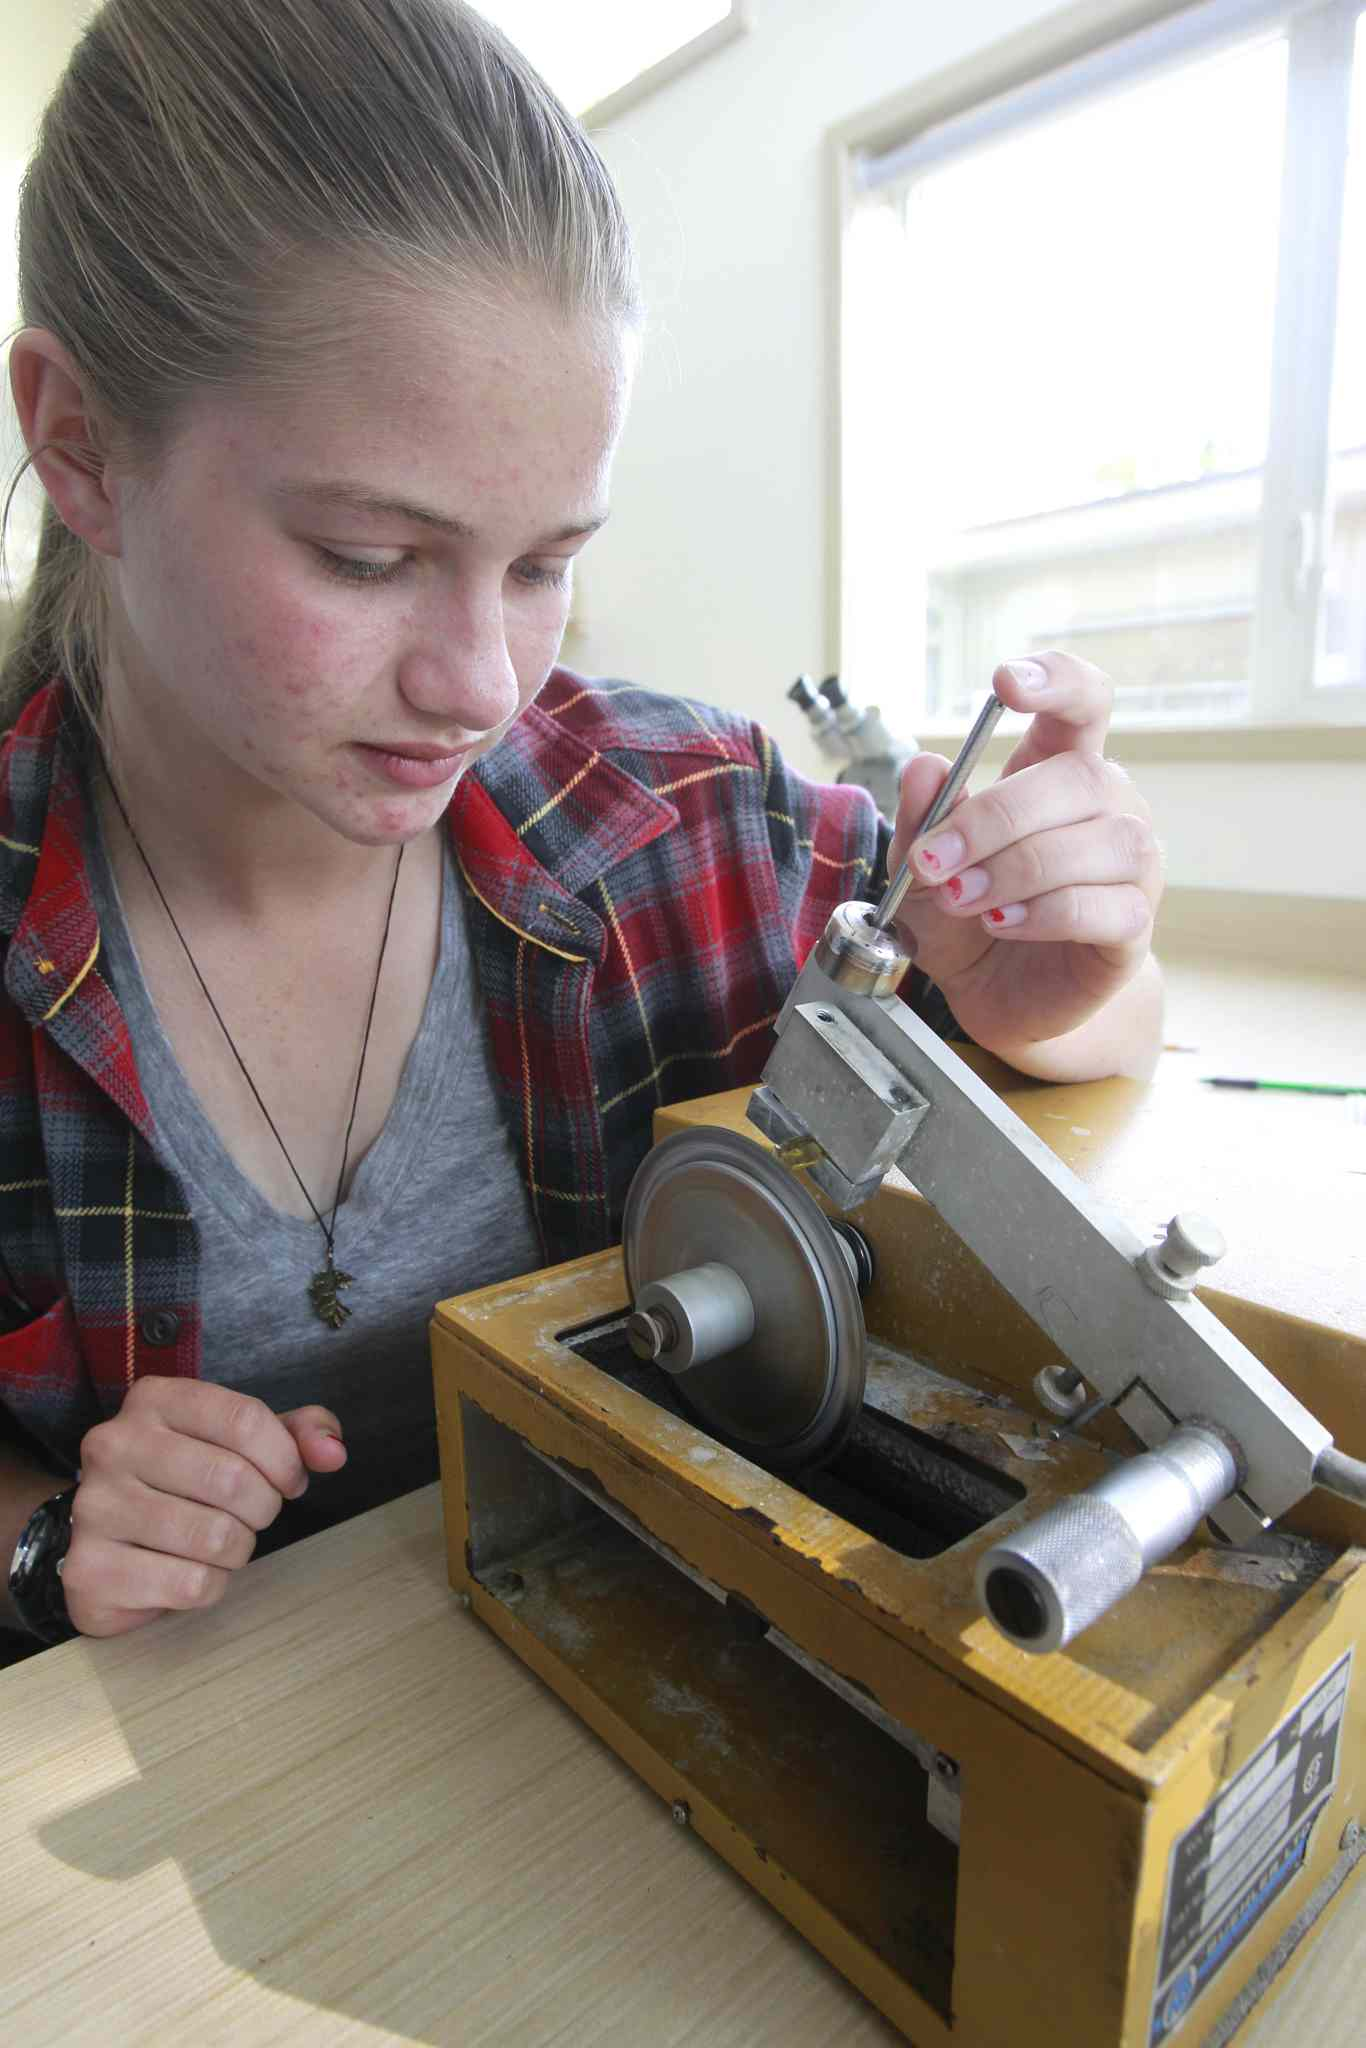 In the field station, Hanna Bohm uses a low-speed saw to cut a slice of a pike specimen to view under a microscope.